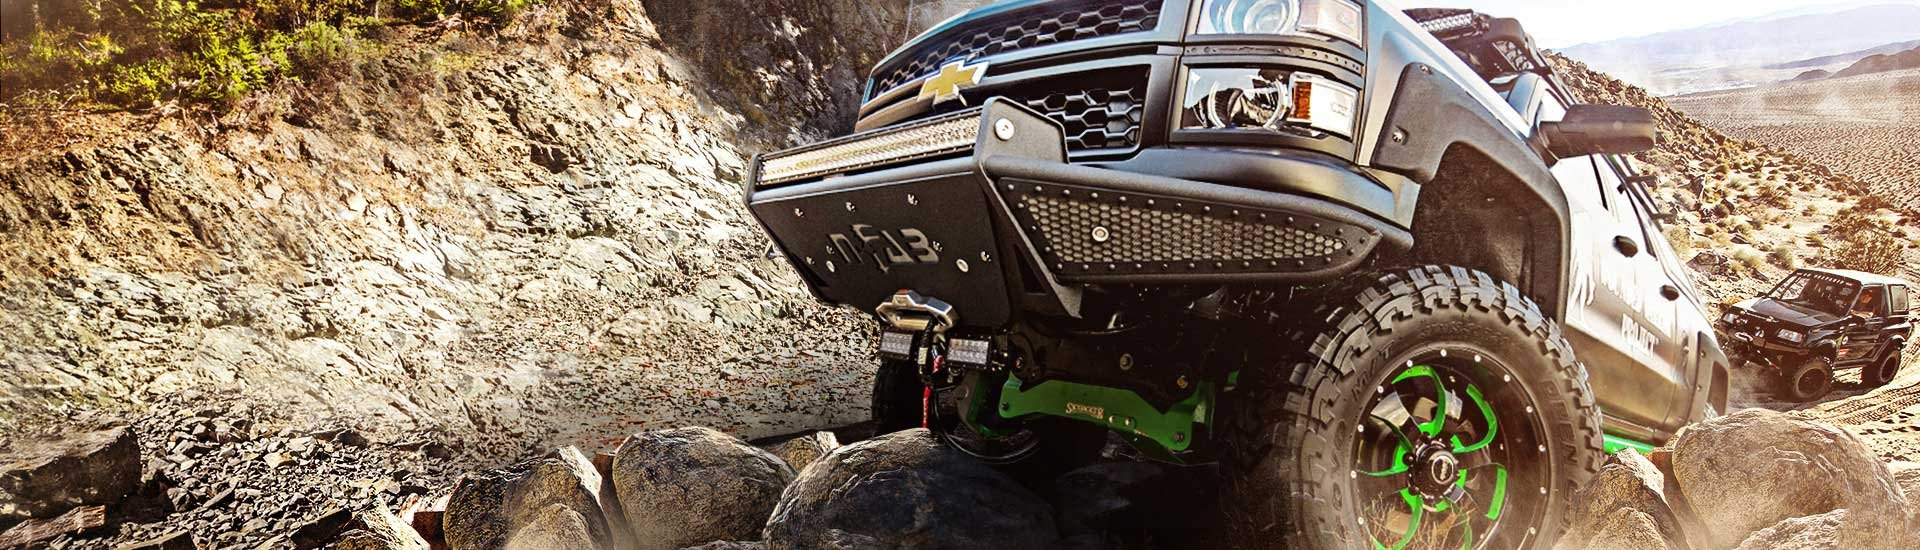 hight resolution of off road world select vehicle